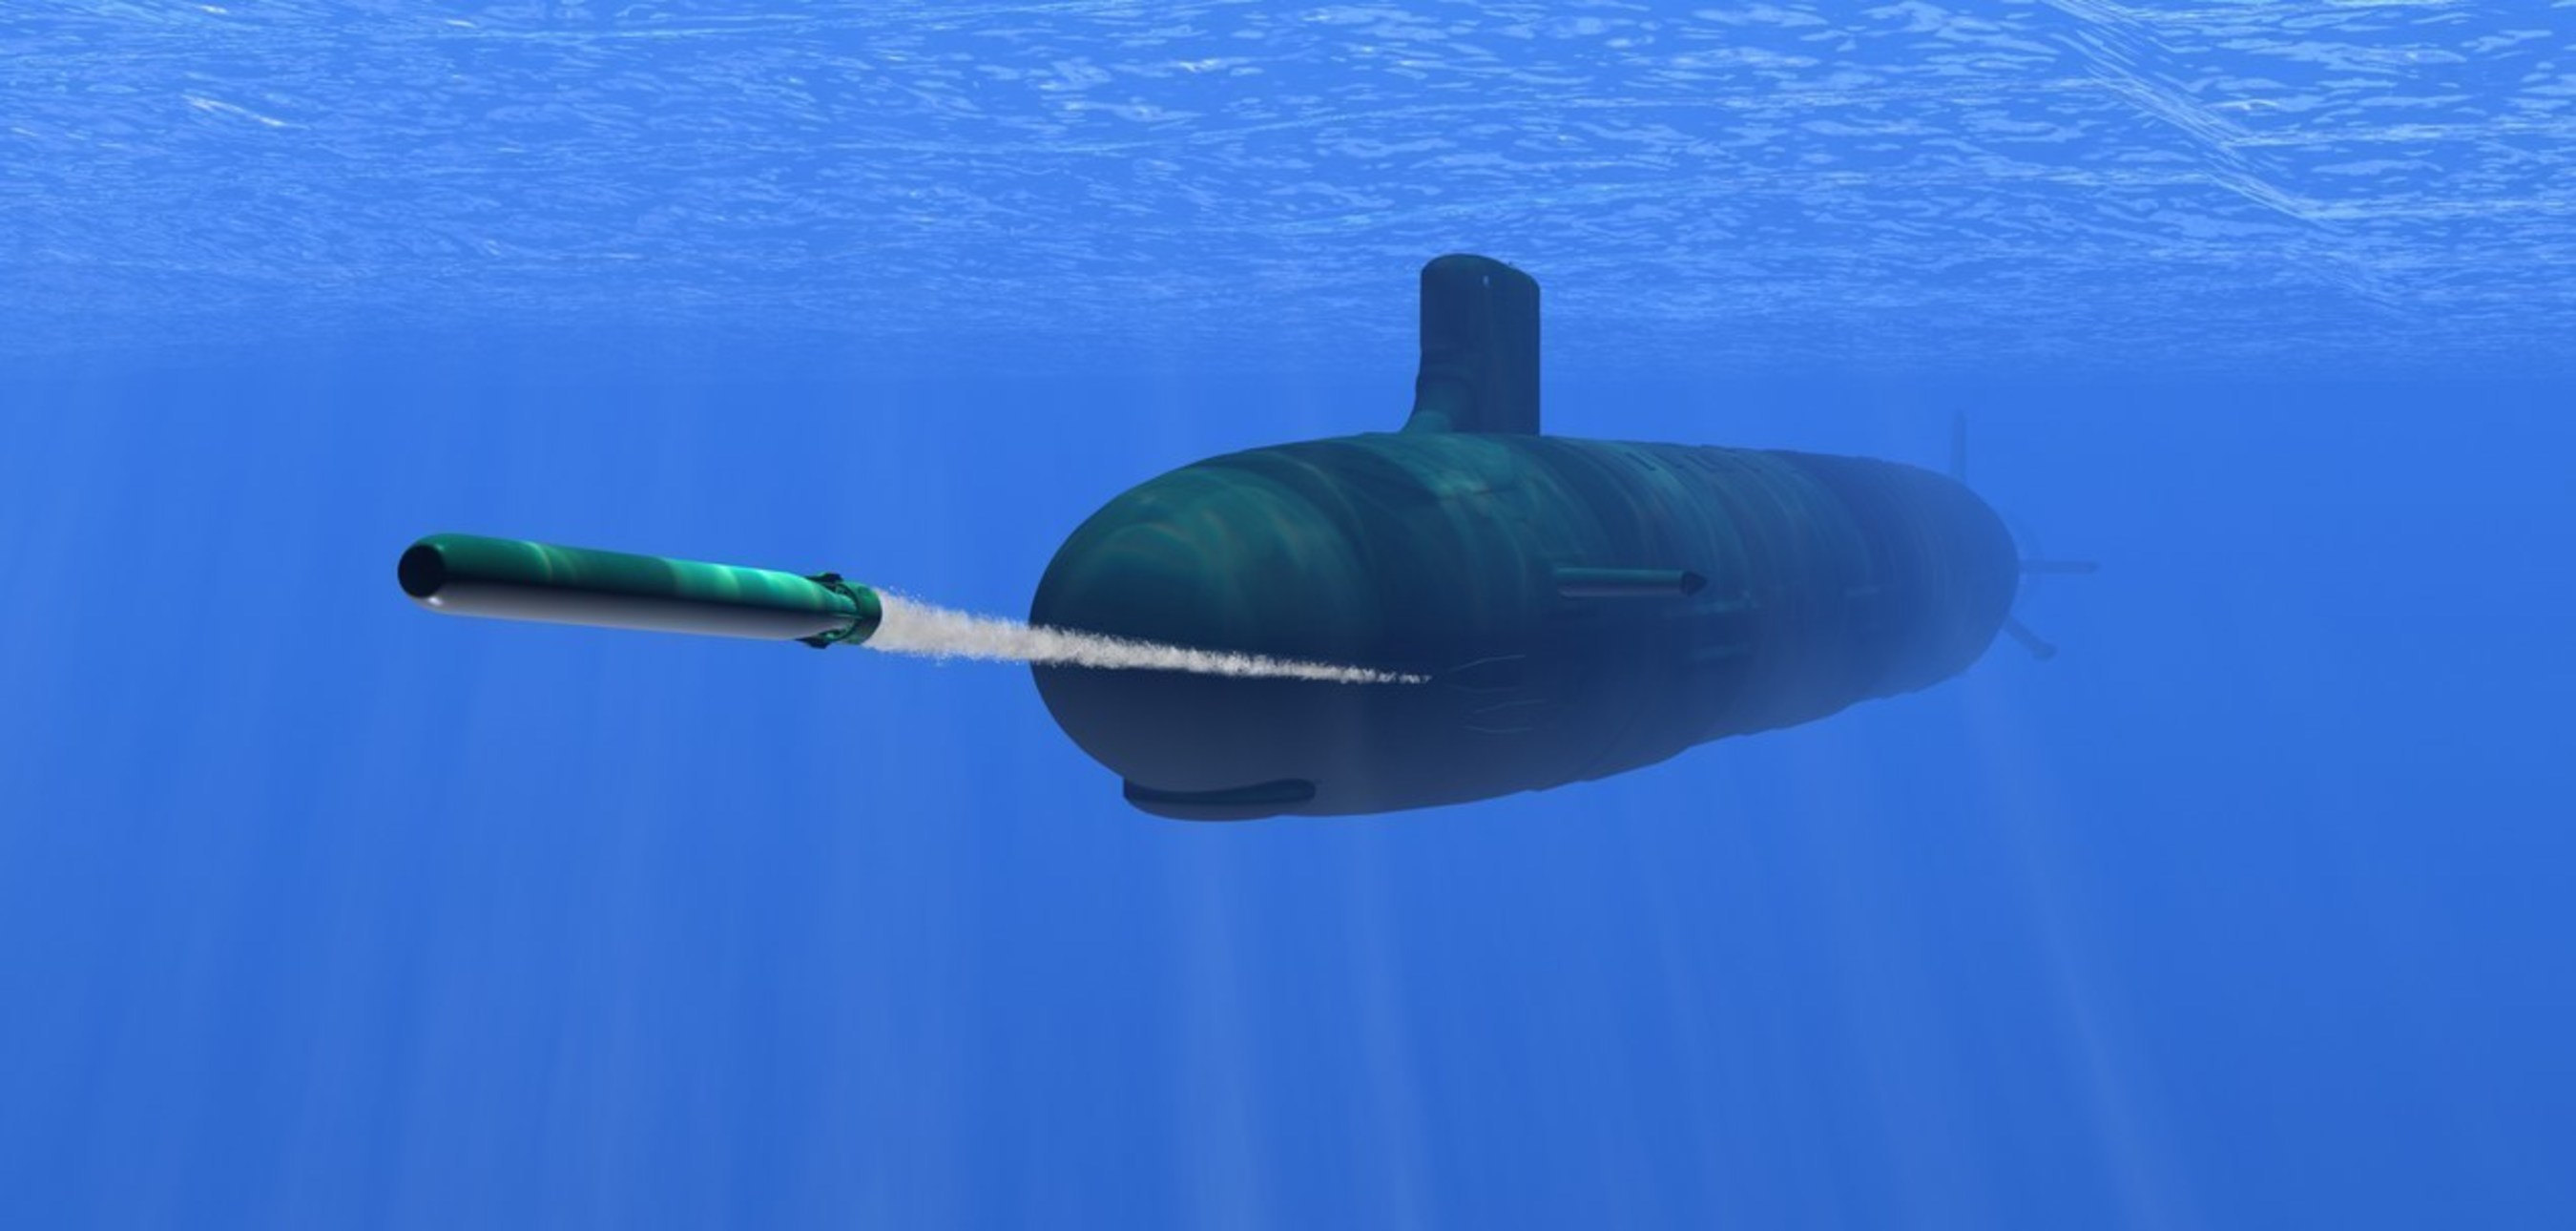 Lockheed Martin will provide fully integrated guidance and control sections to increase the inventory of MK 48 Mod 7 torpedoes. The MK 48 torpedo is used by all classes of submarines as their anti-submarine warfare (ASW) and anti-surface warfare (ASuW) weapon. Photo courtesy Lockheed Martin.